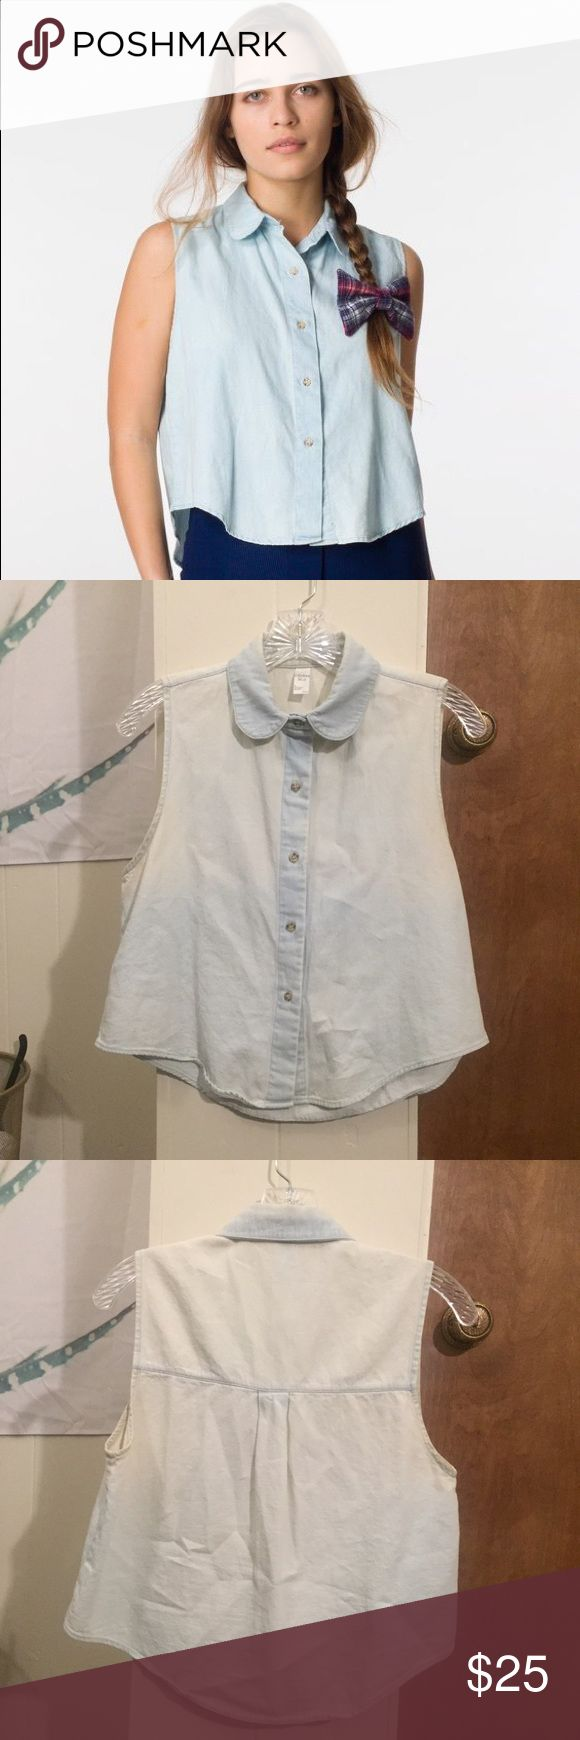 AA Sleeveless Denim Shirt Cute and classic. Tiny, light stain as shown in last picture, but otherwise in excellent condition! Size XS/S but fits more like a small. American Apparel Tops Button Down Shirts